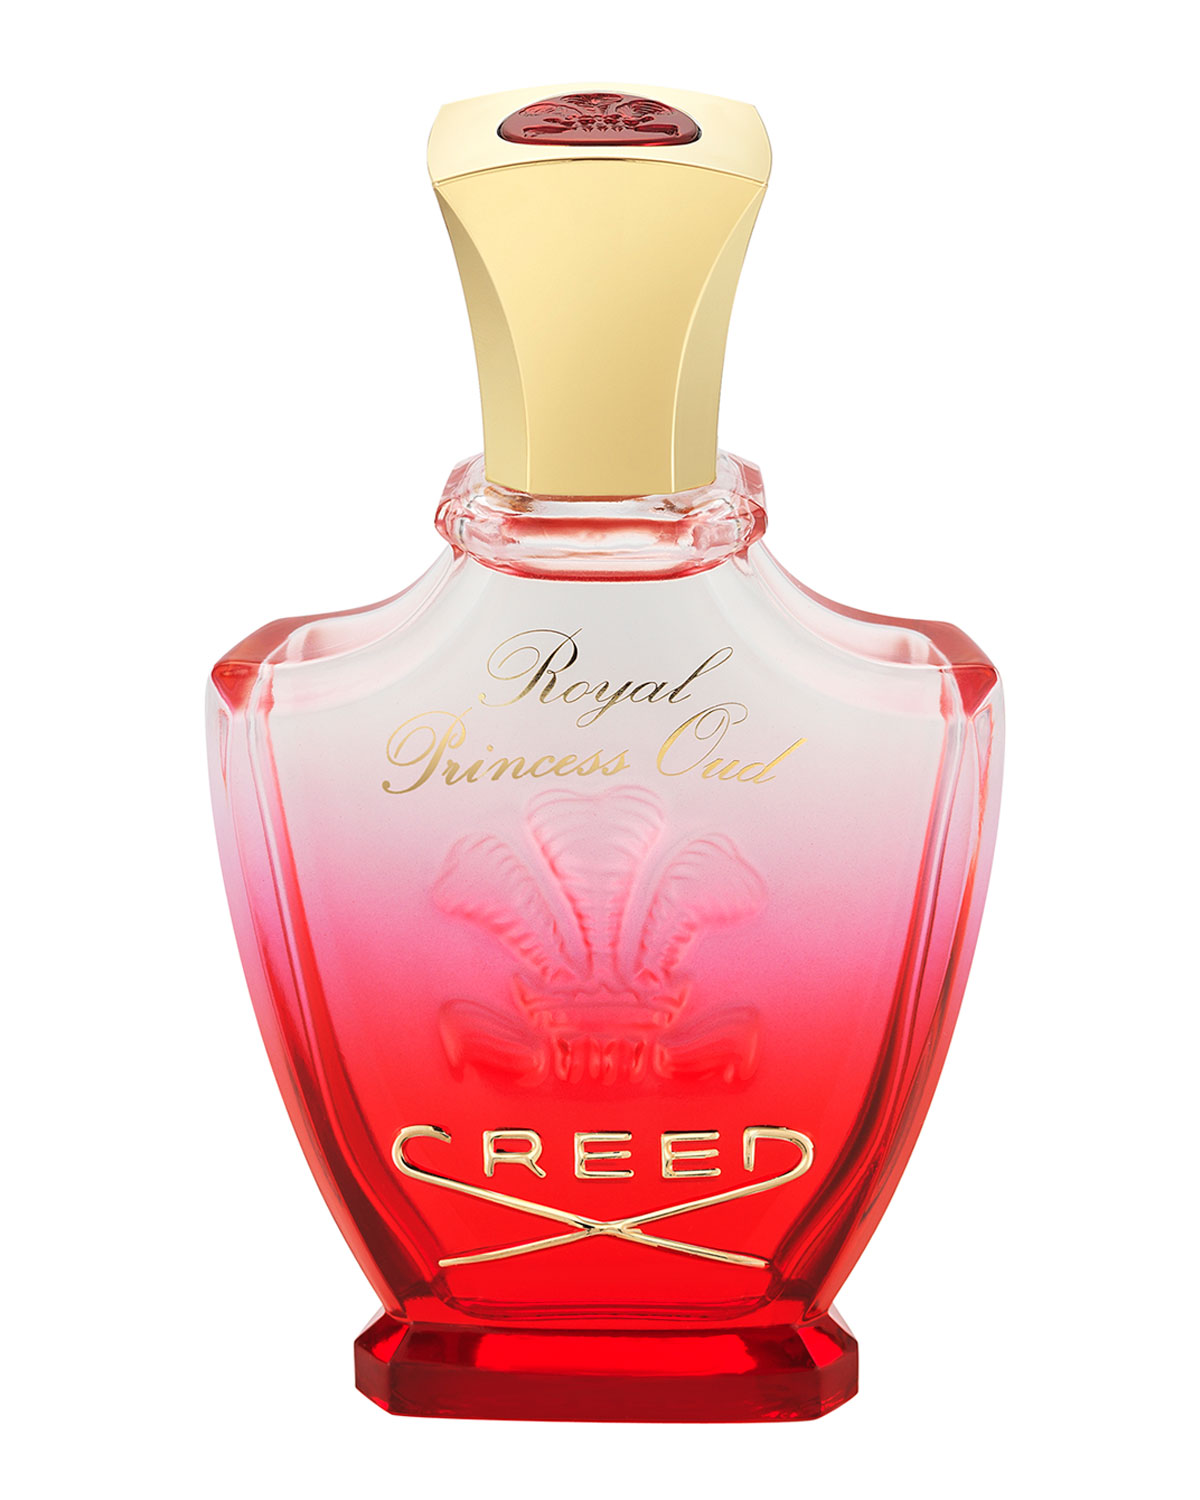 CREED 2.5 oz. Royal Princess Oud